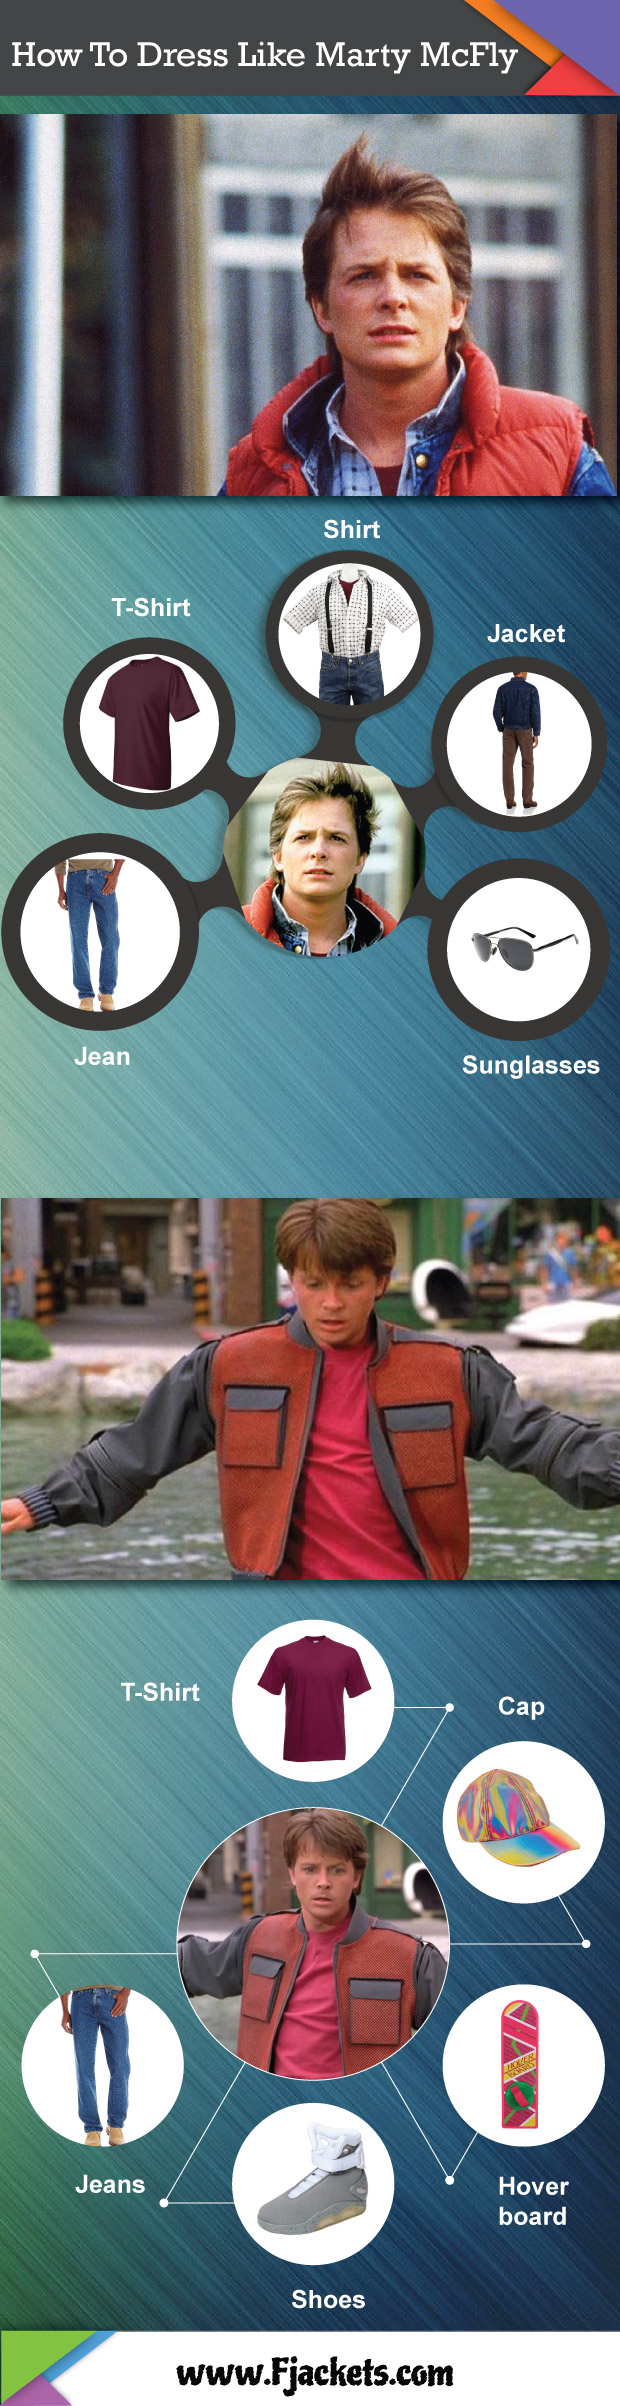 Marty McFly Infographic